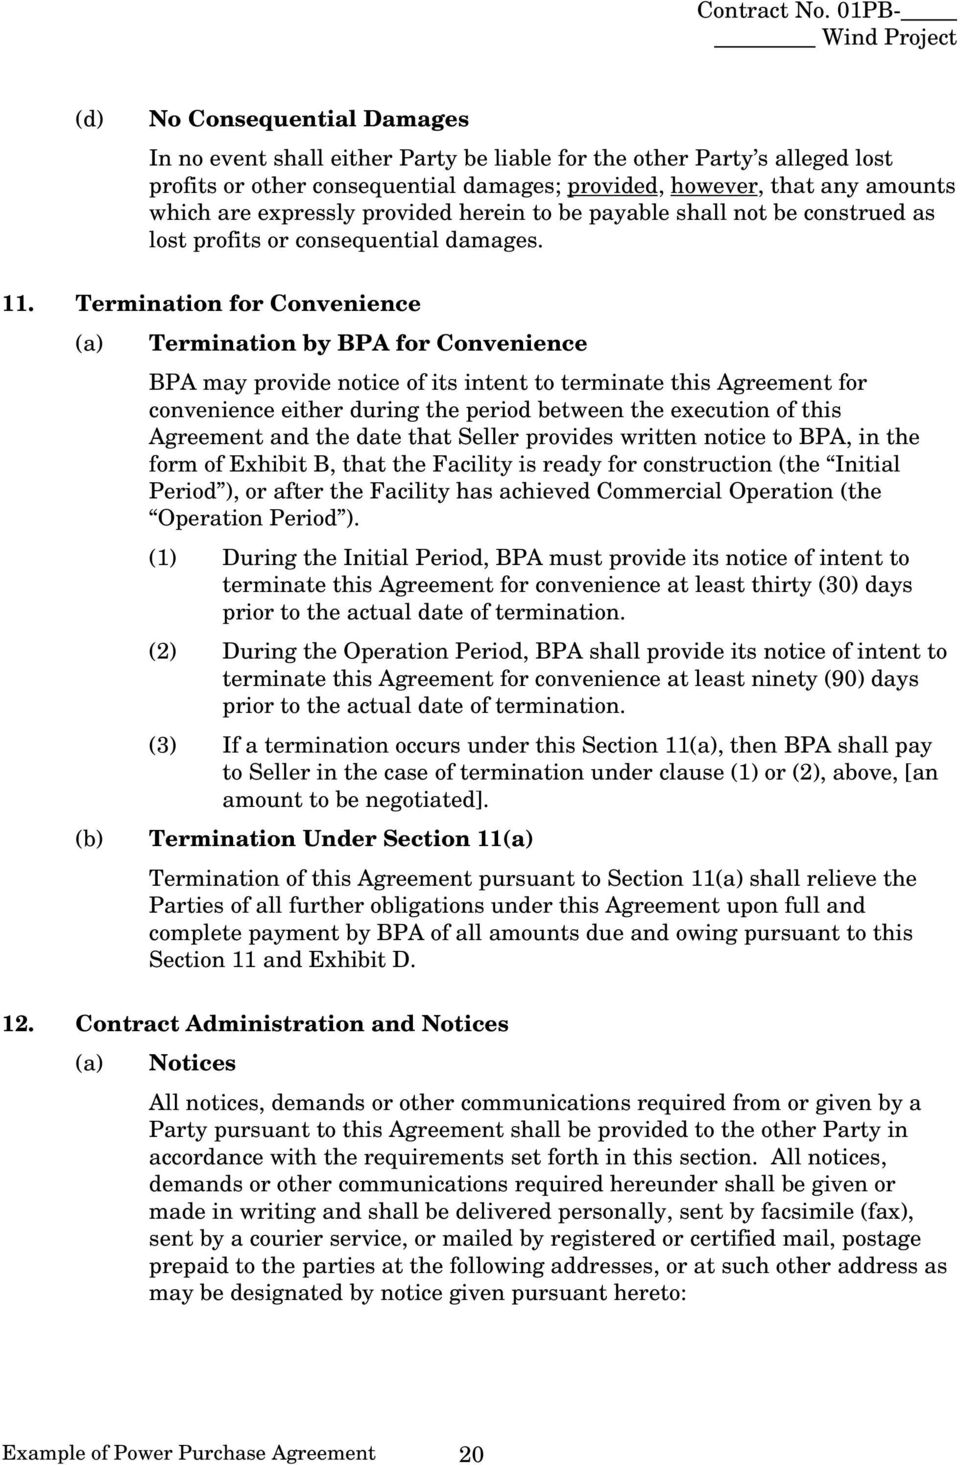 Termination for Convenience (a) Termination by BPA for Convenience BPA may provide notice of its intent to terminate this Agreement for convenience either during the period between the execution of